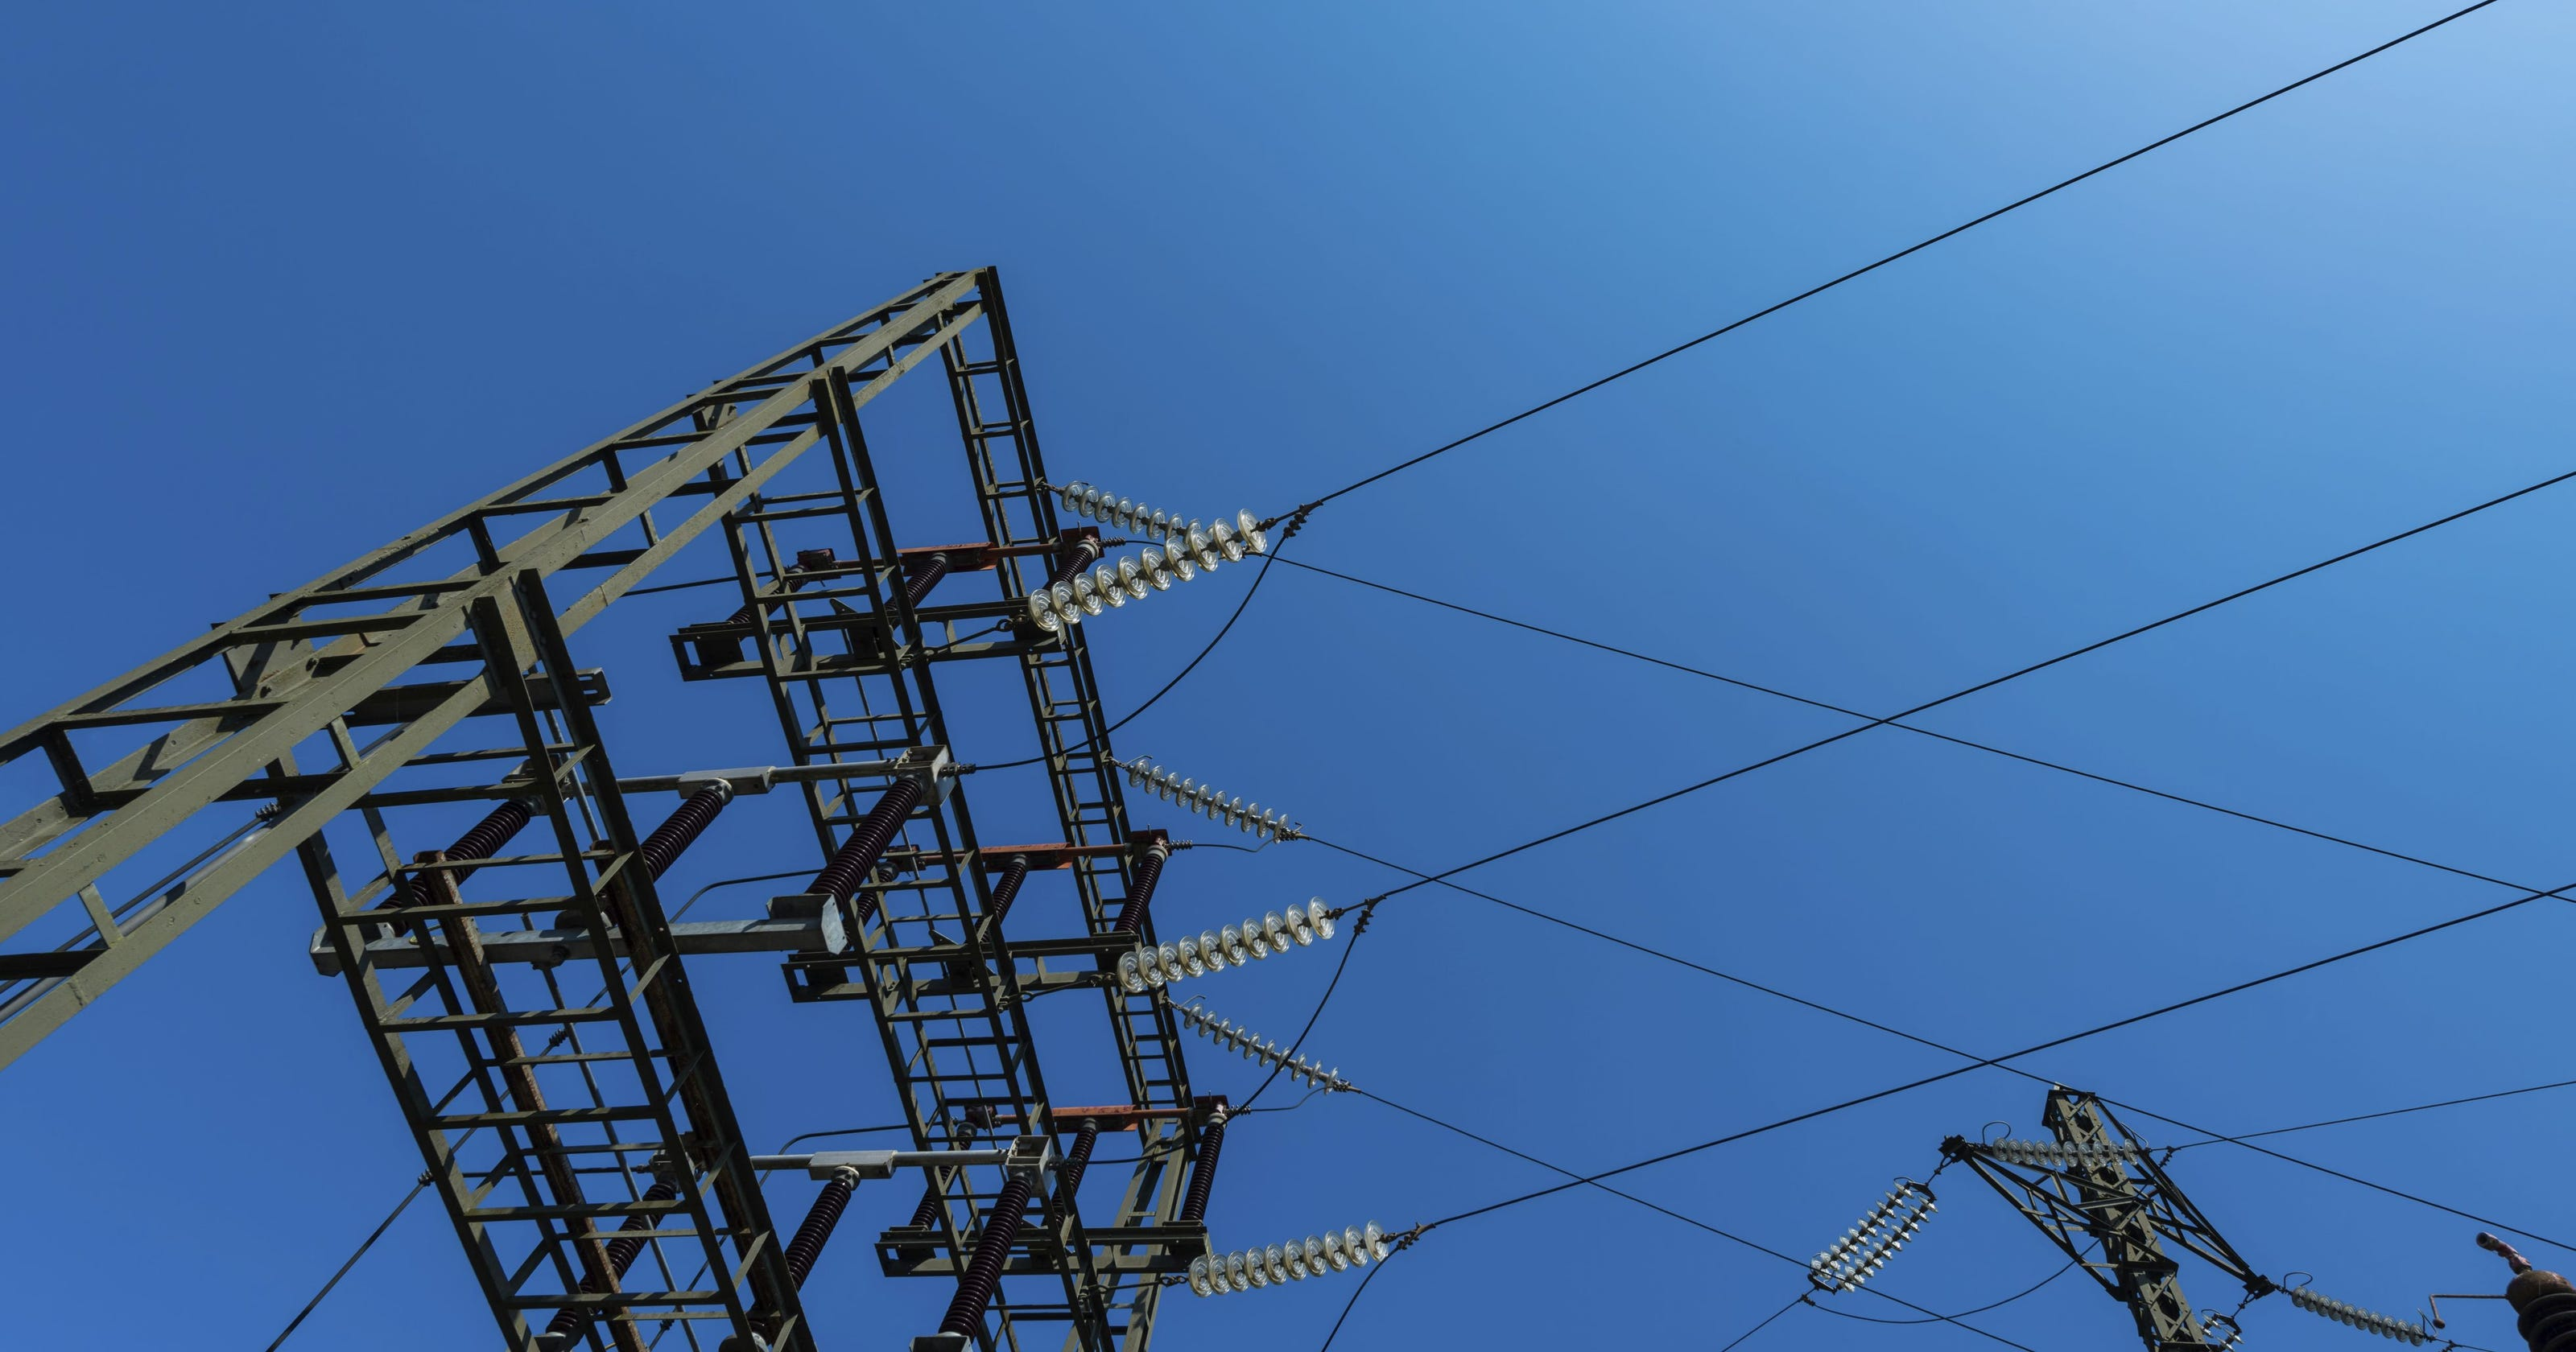 Asked: Why are some power lines overhead and some underground?